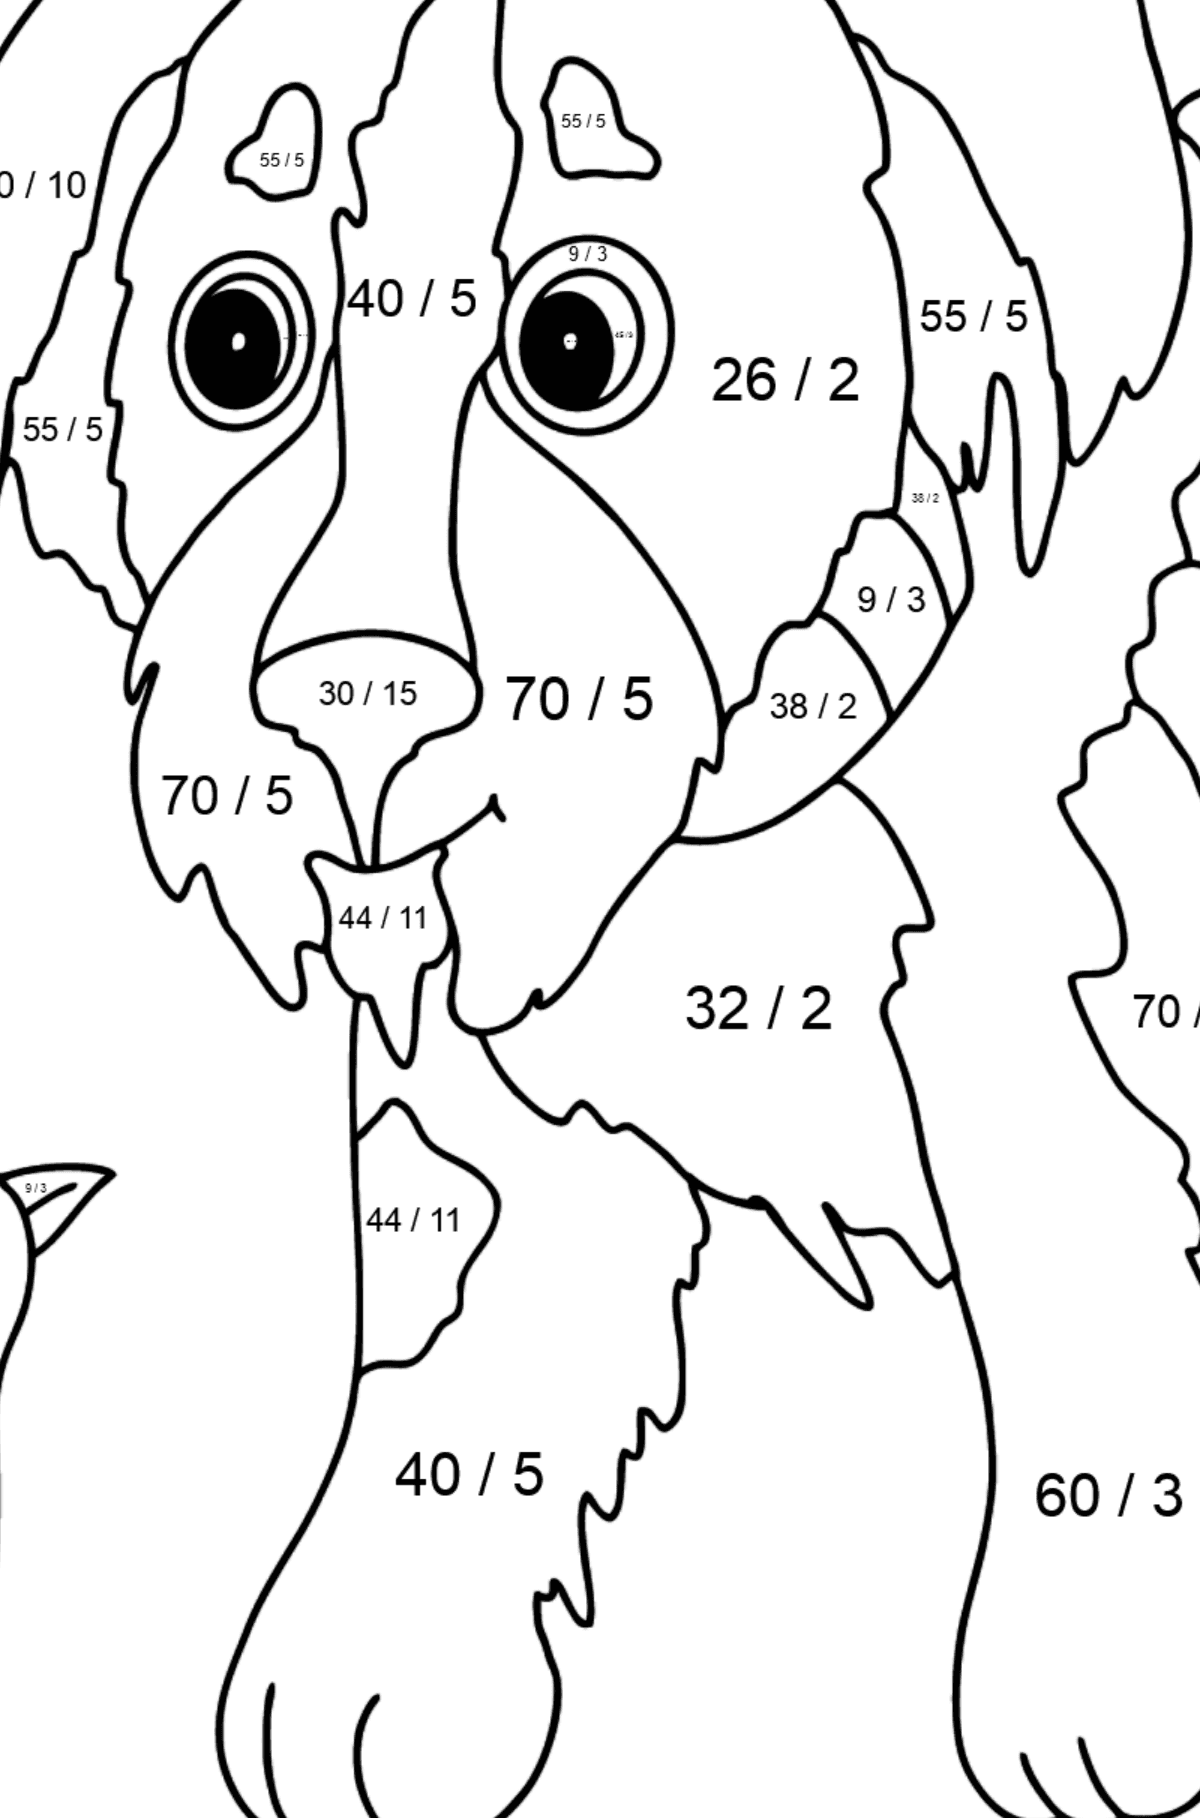 Coloring Page - A Dog is Playing with a Bird - Math Coloring - Division for Kids